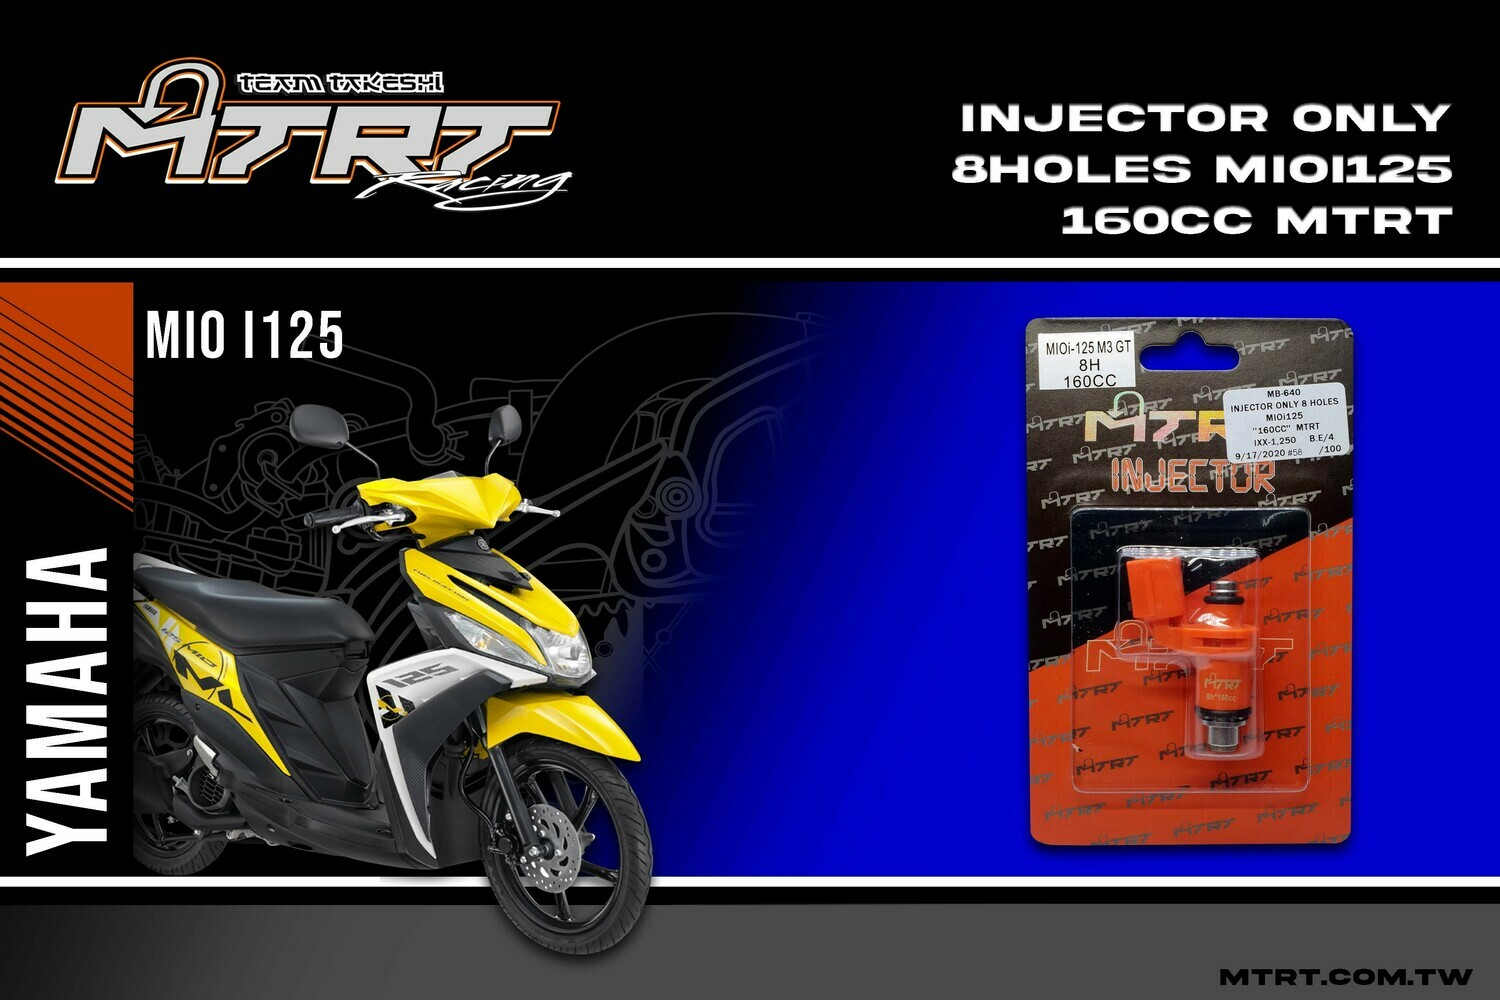 INJECTOR ONLY 8HOLES  MIOi125  160CC MTRT